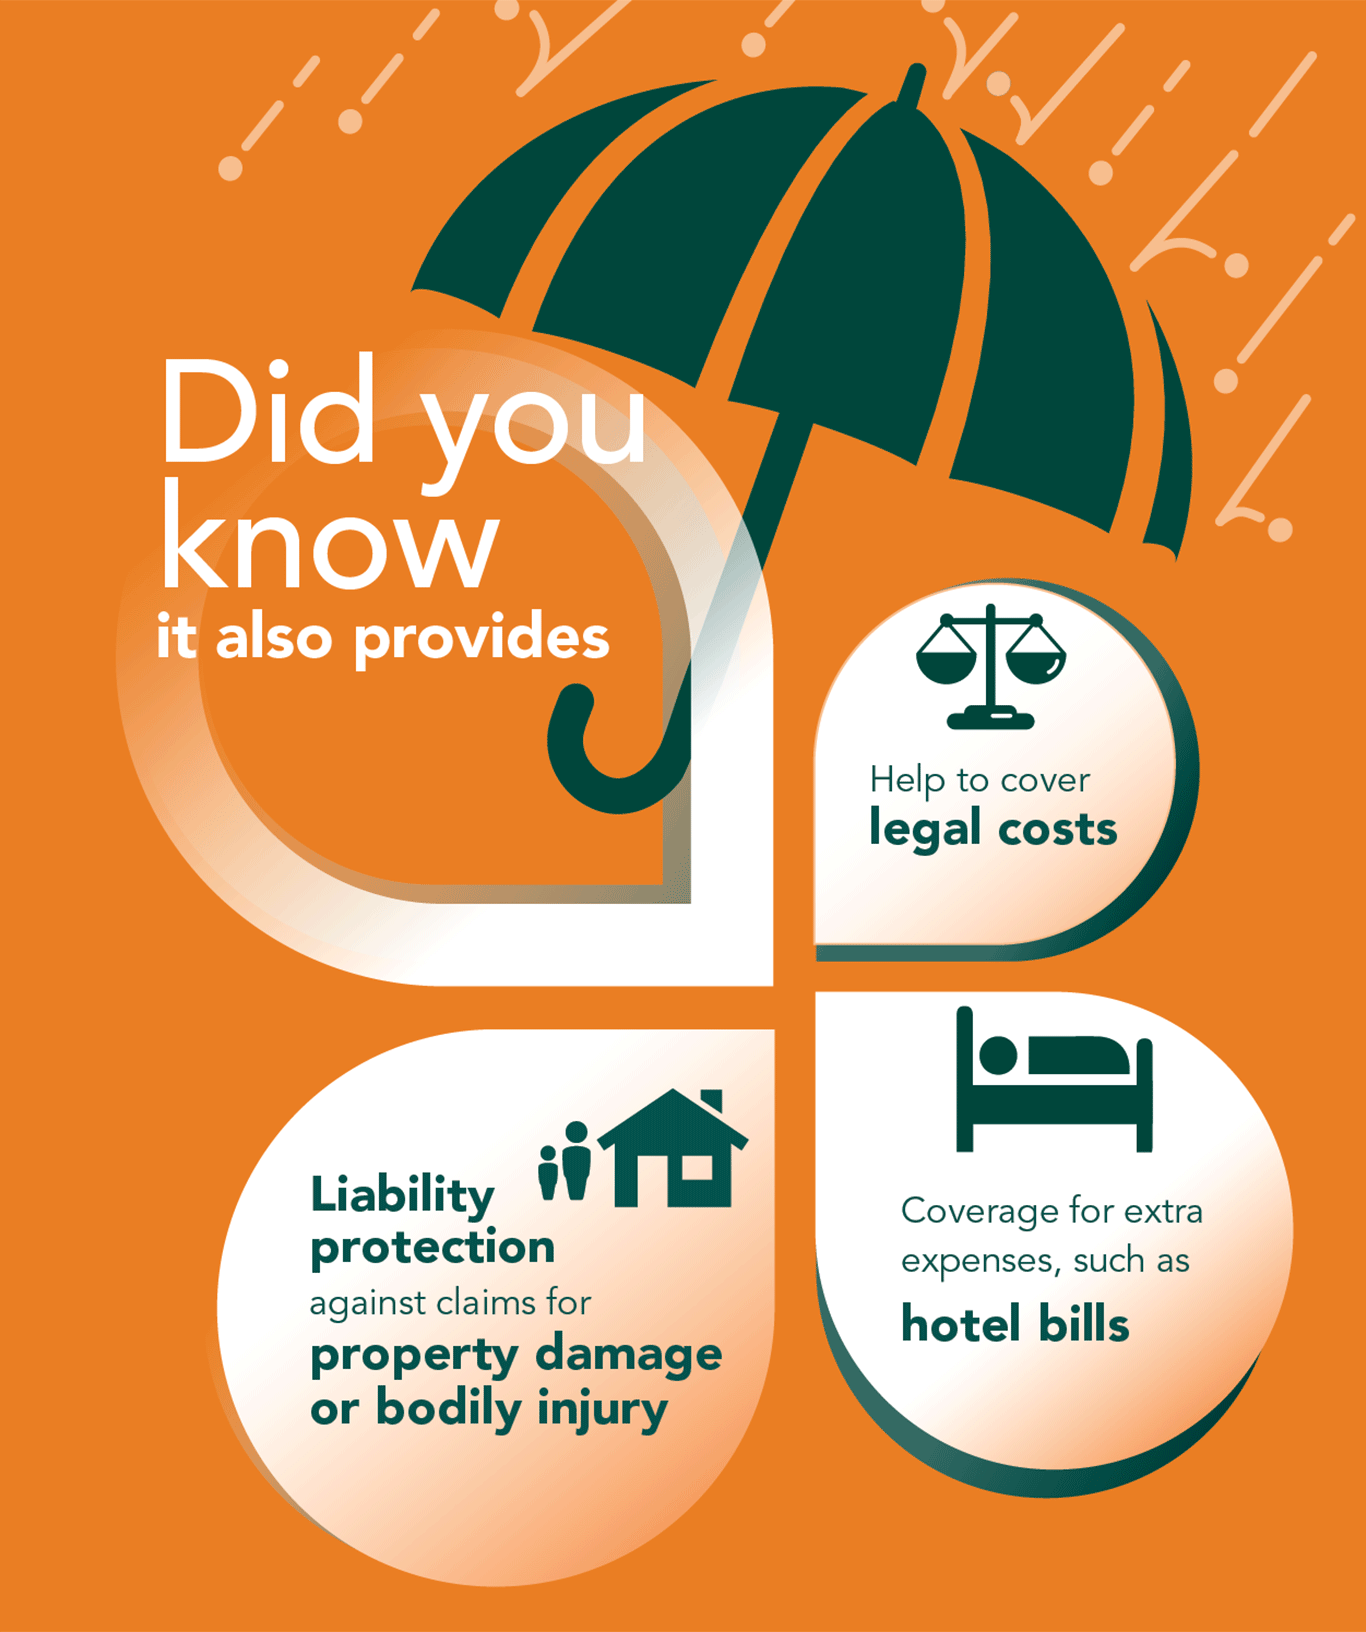 It also helps with legal and hotel bills and liability protection against claims of property damage or bodily injury